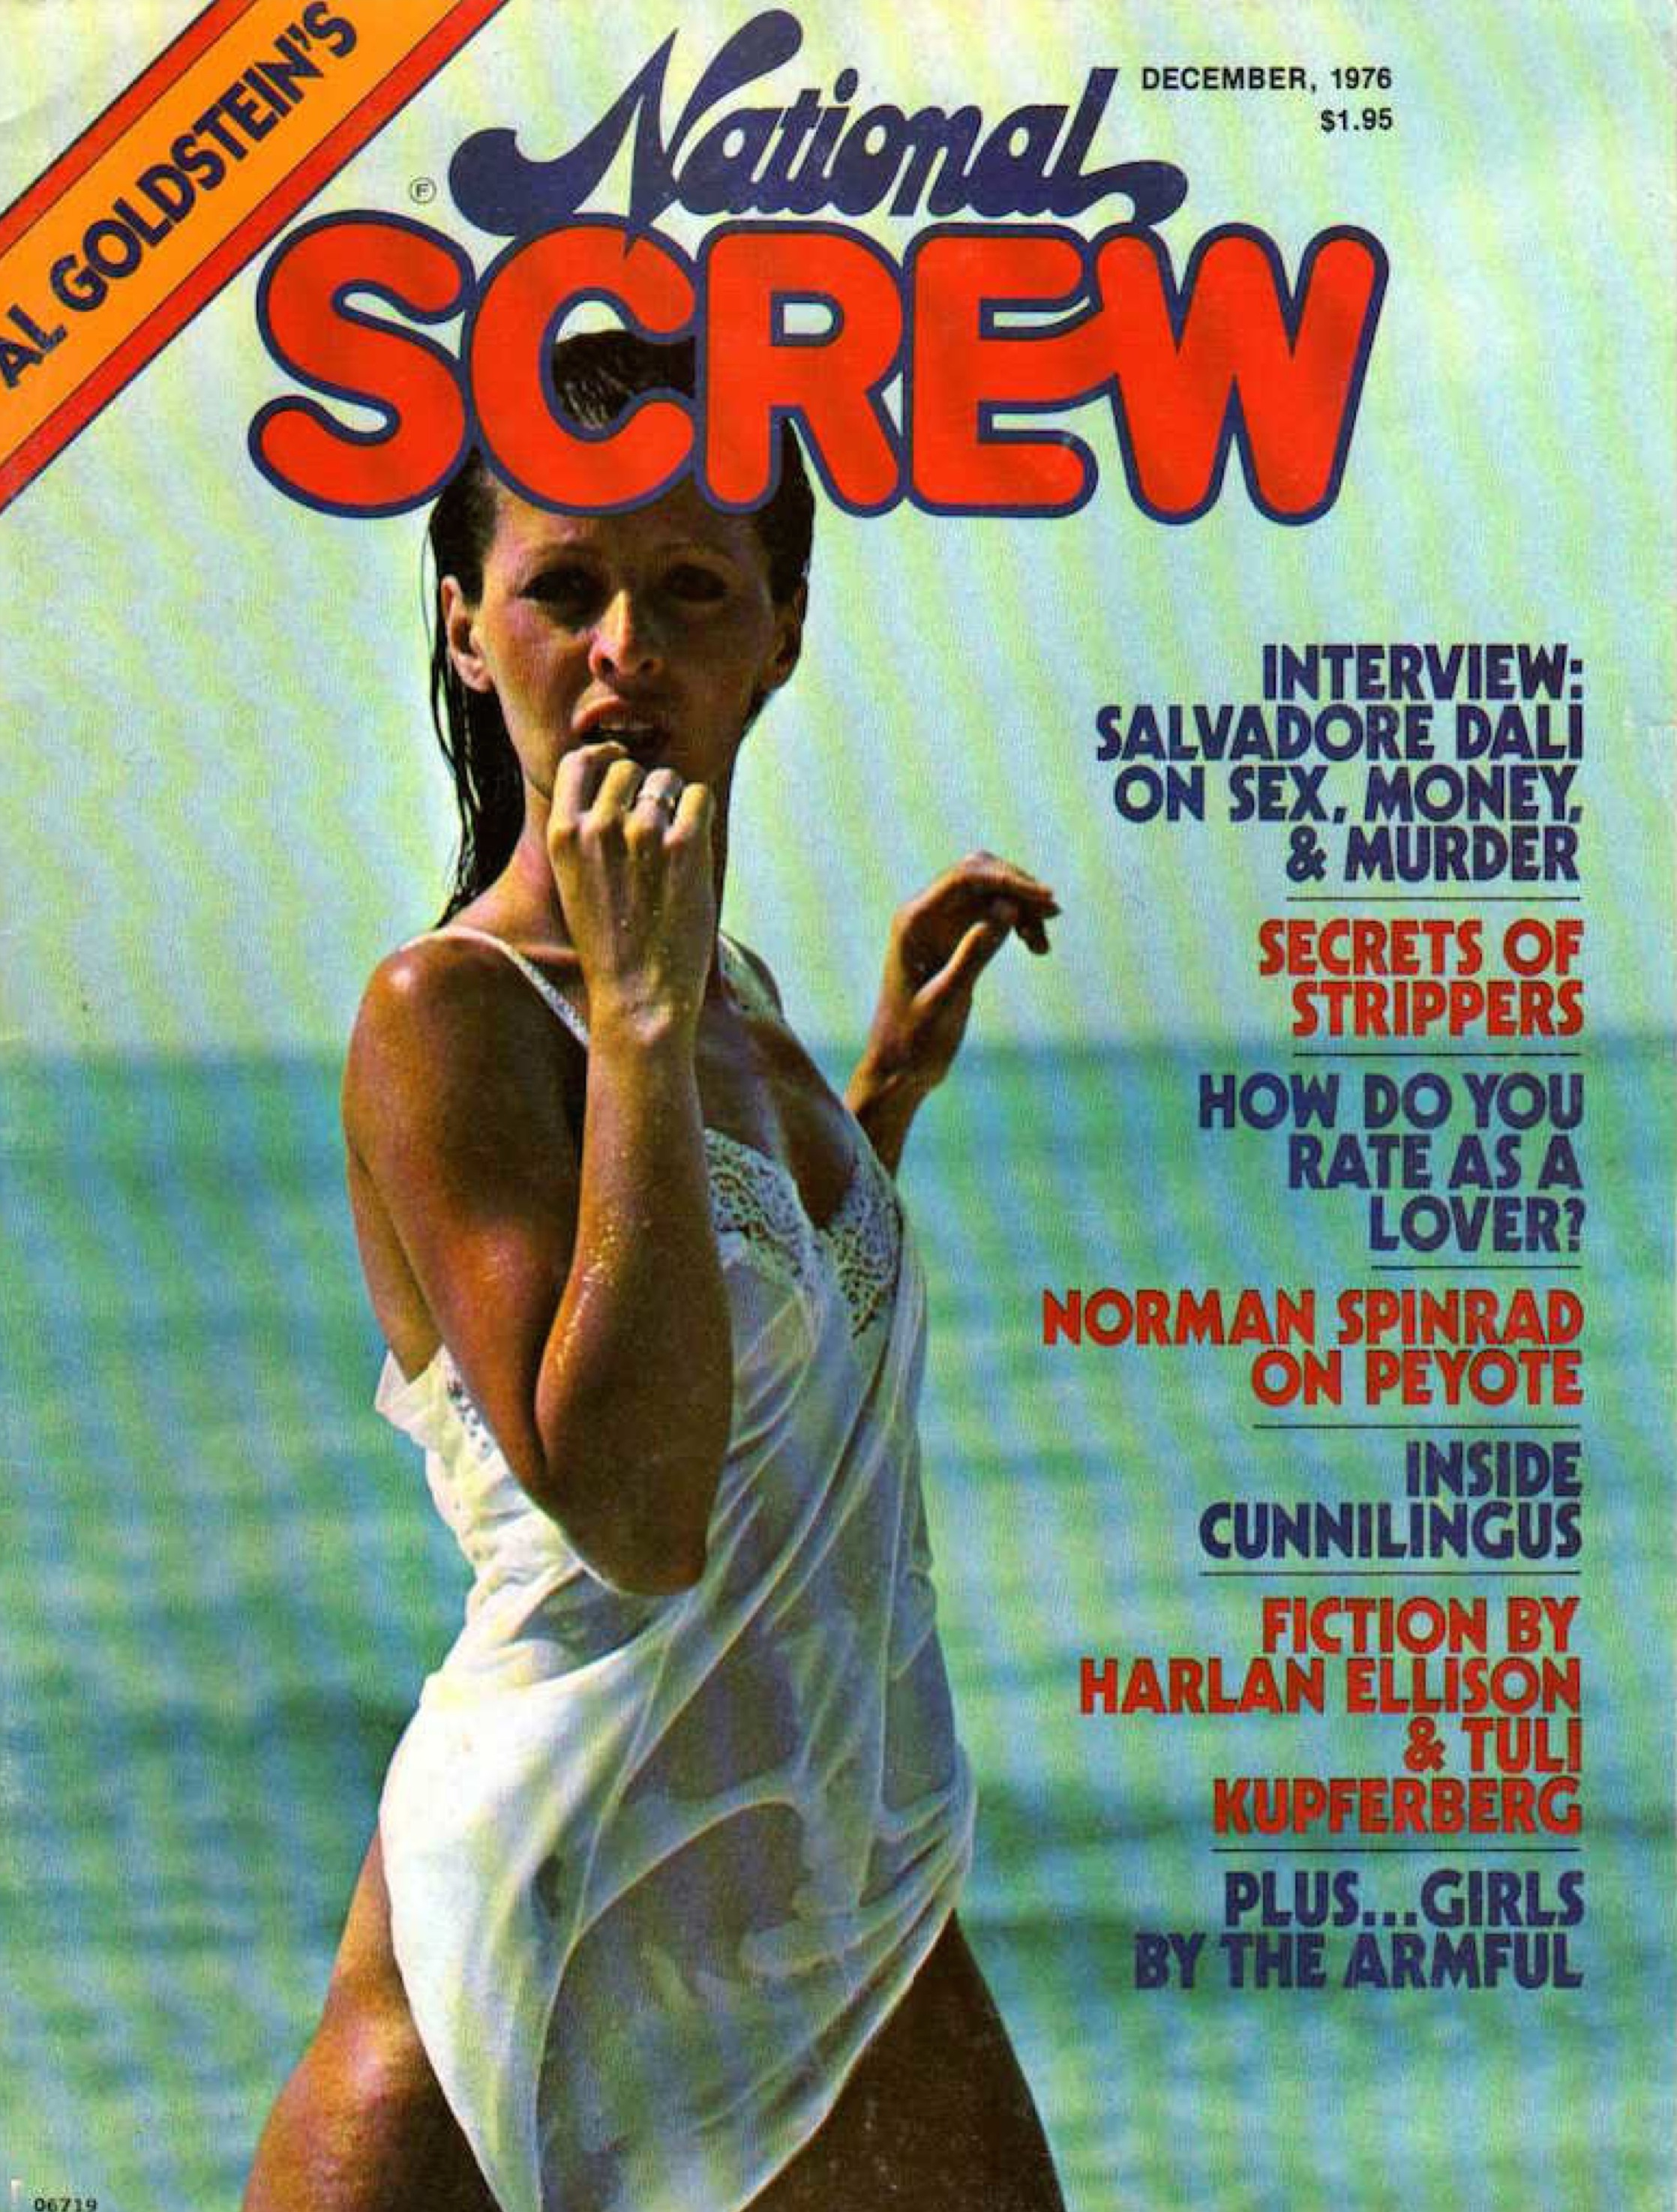 Screw interviews cover 1976